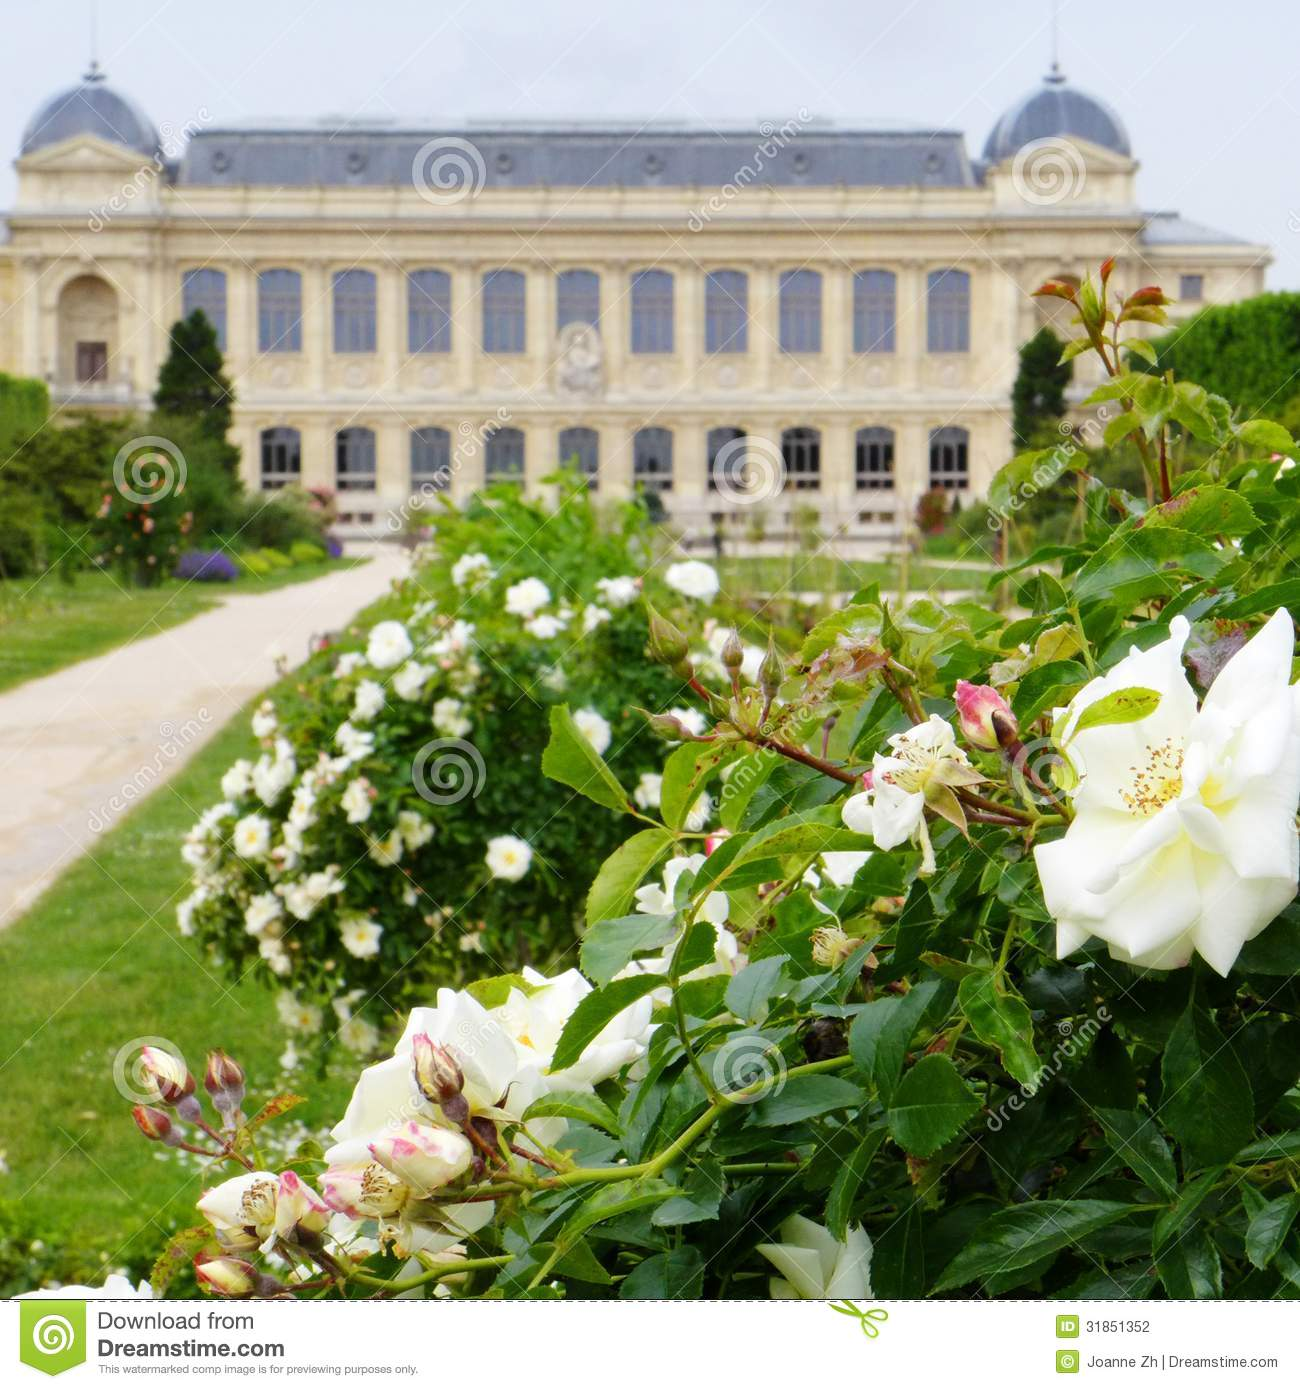 Jardin des plantes paris france stock photo image for Jardines des plantes